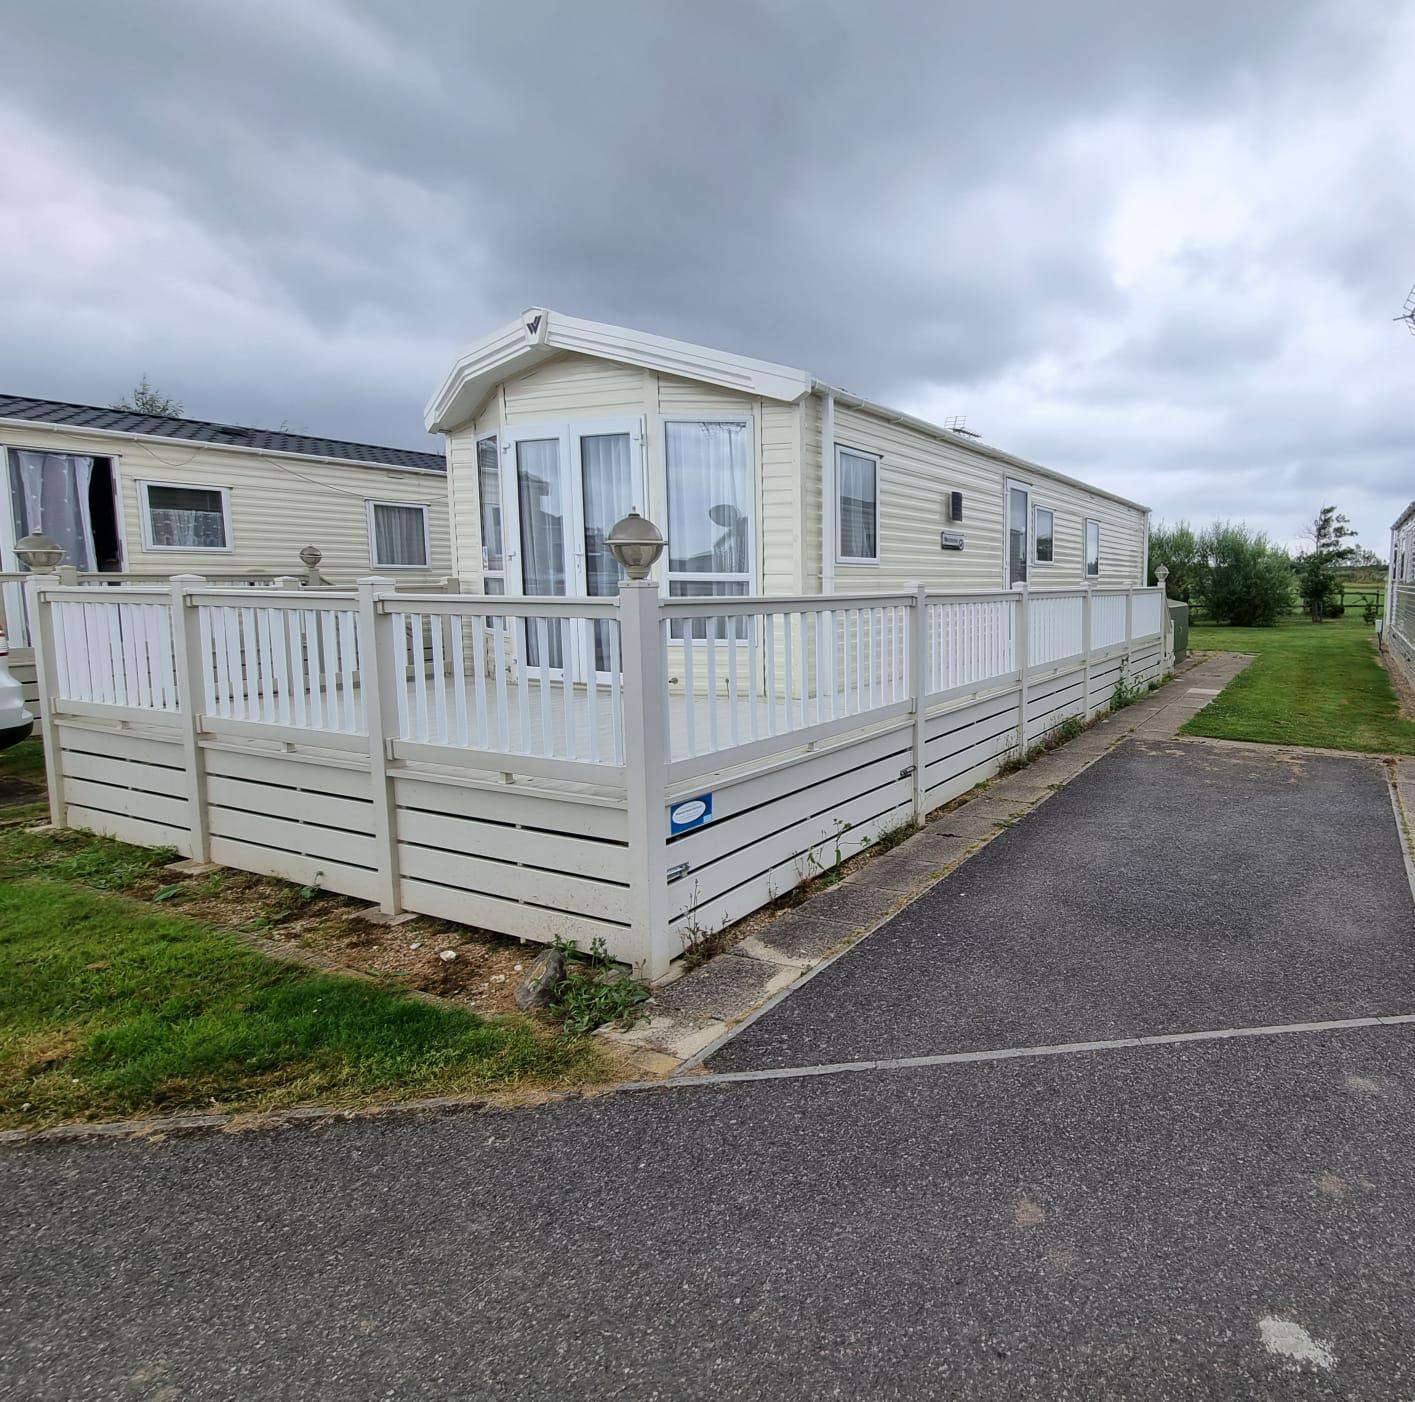 47012BW – Blue Water area, 2 bed, 6 berth caravan with decking and free WiFi. Platinum rated. - property